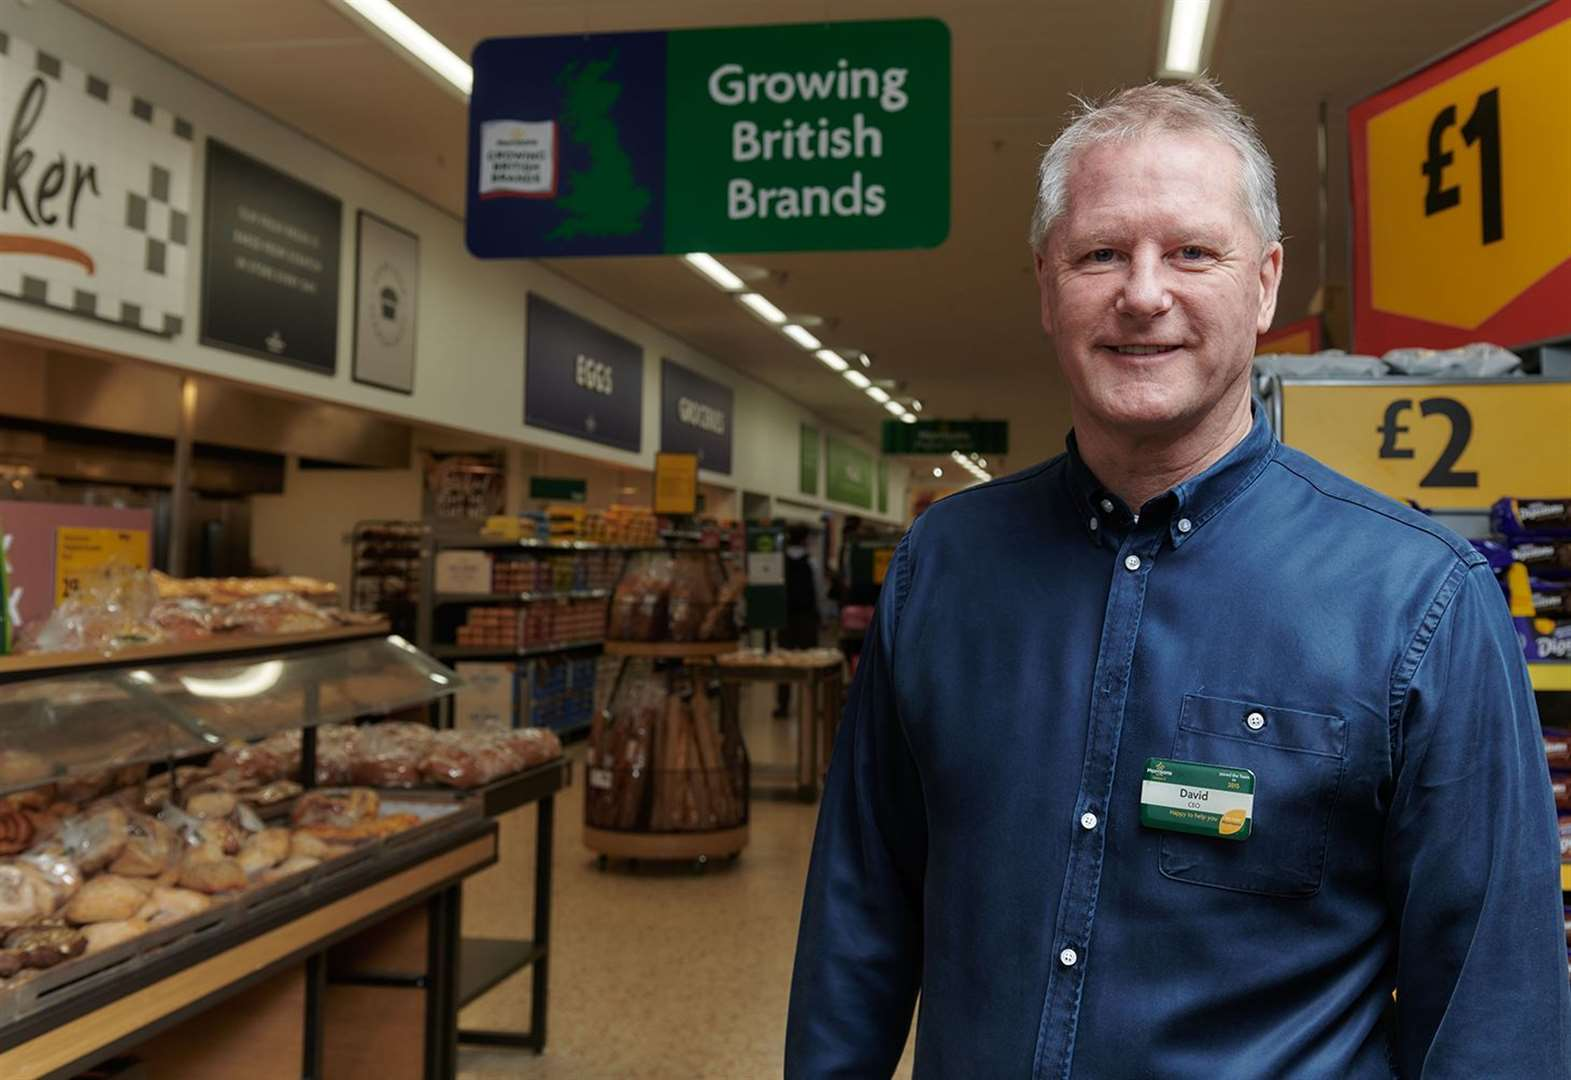 Sell your product here says supermarket